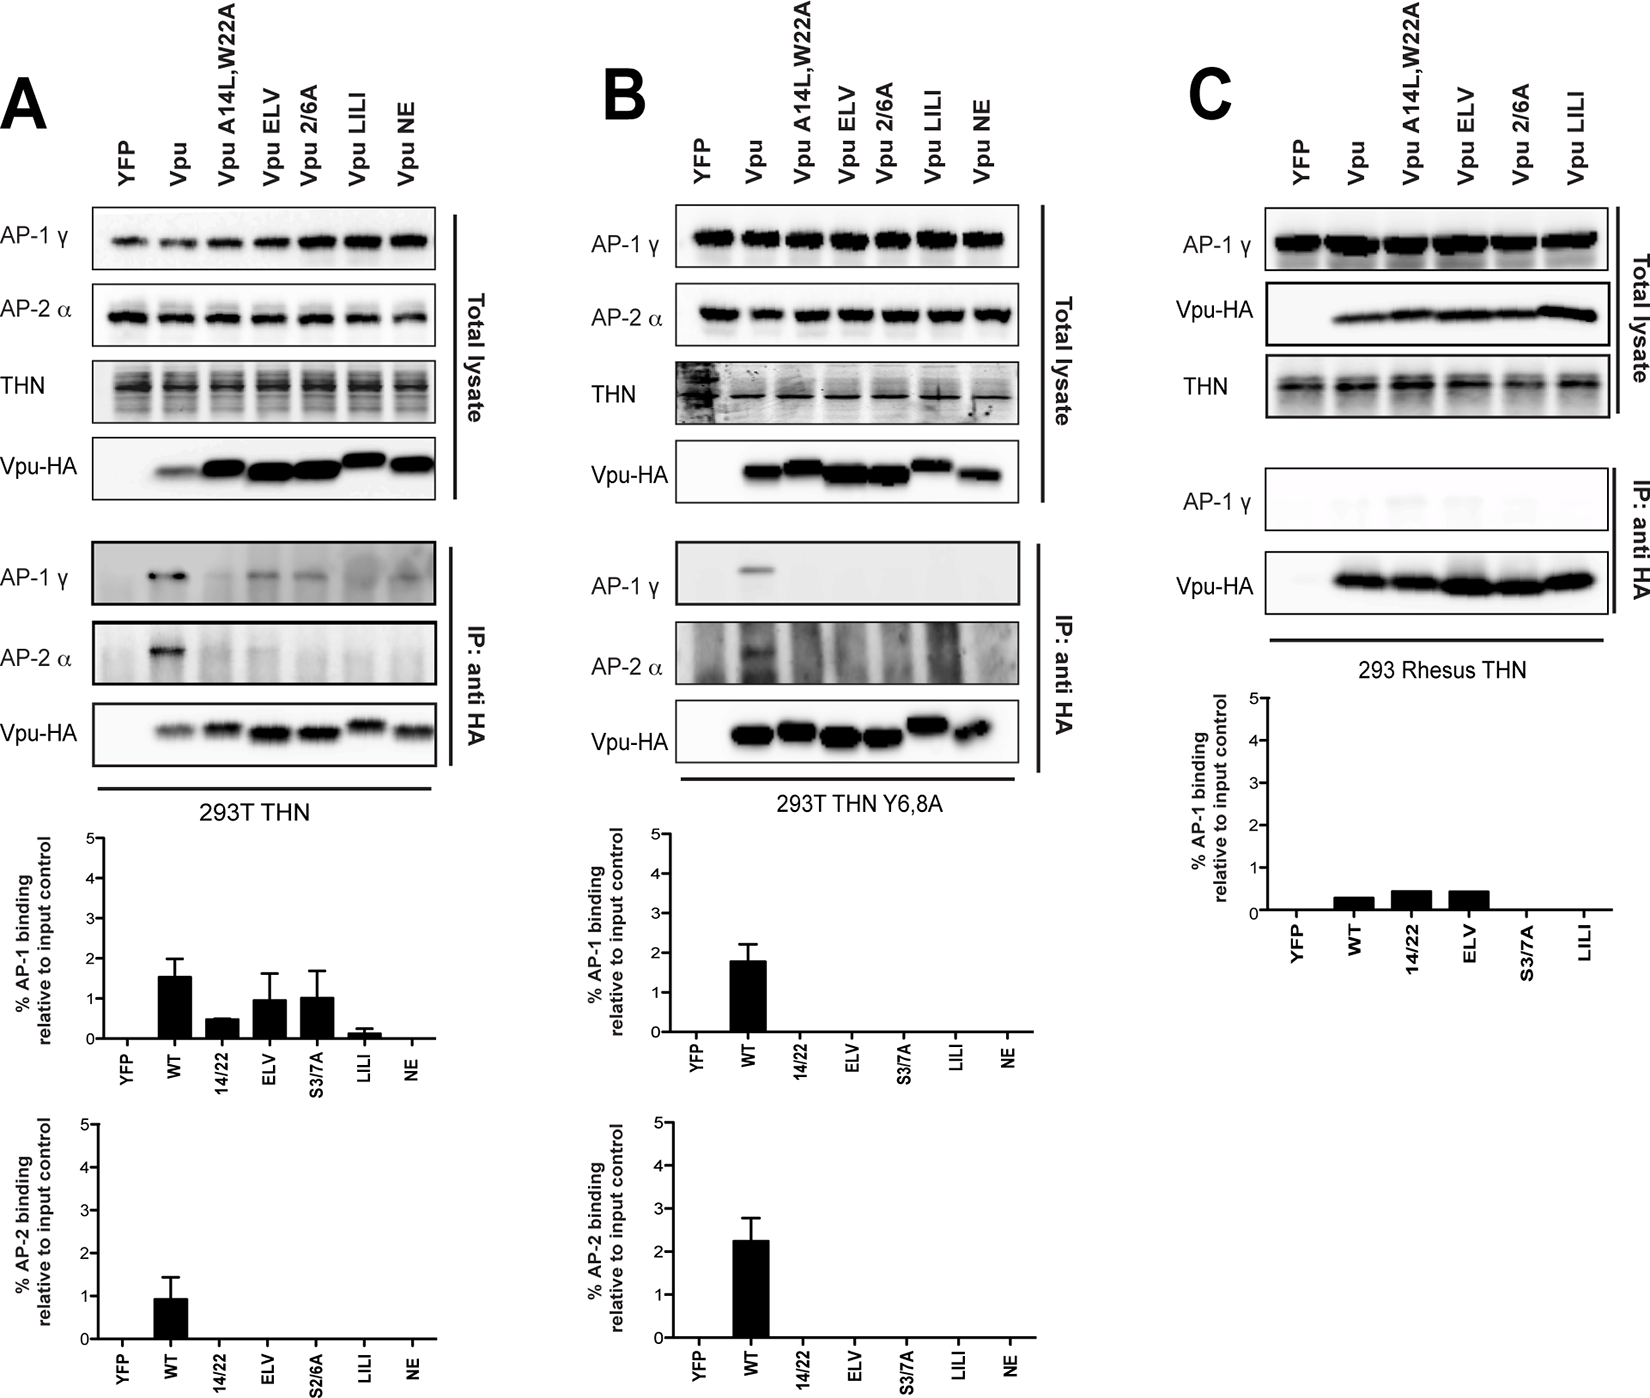 Vpu interacts with clathrin adaptors AP-1 and AP-2 in tetherin-expressing cells.